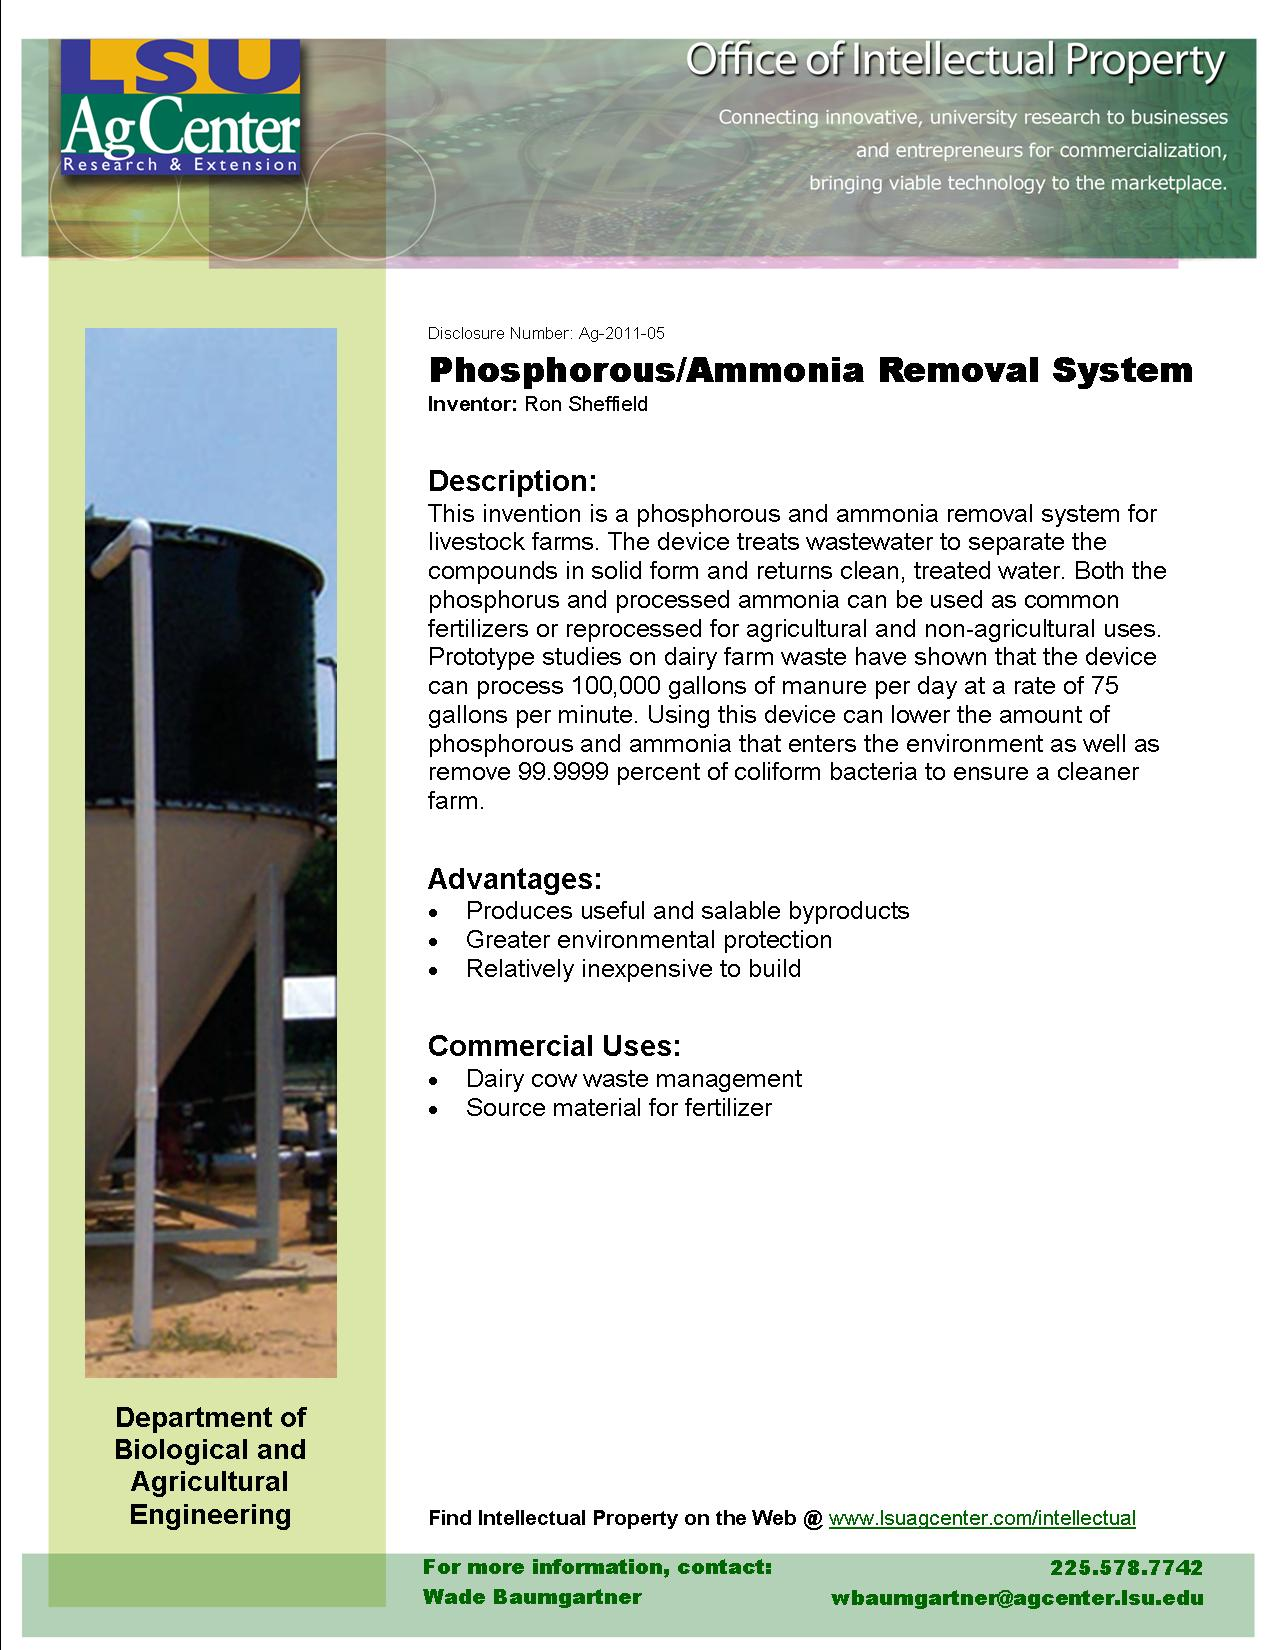 Phosphorous/Ammonia Removal System